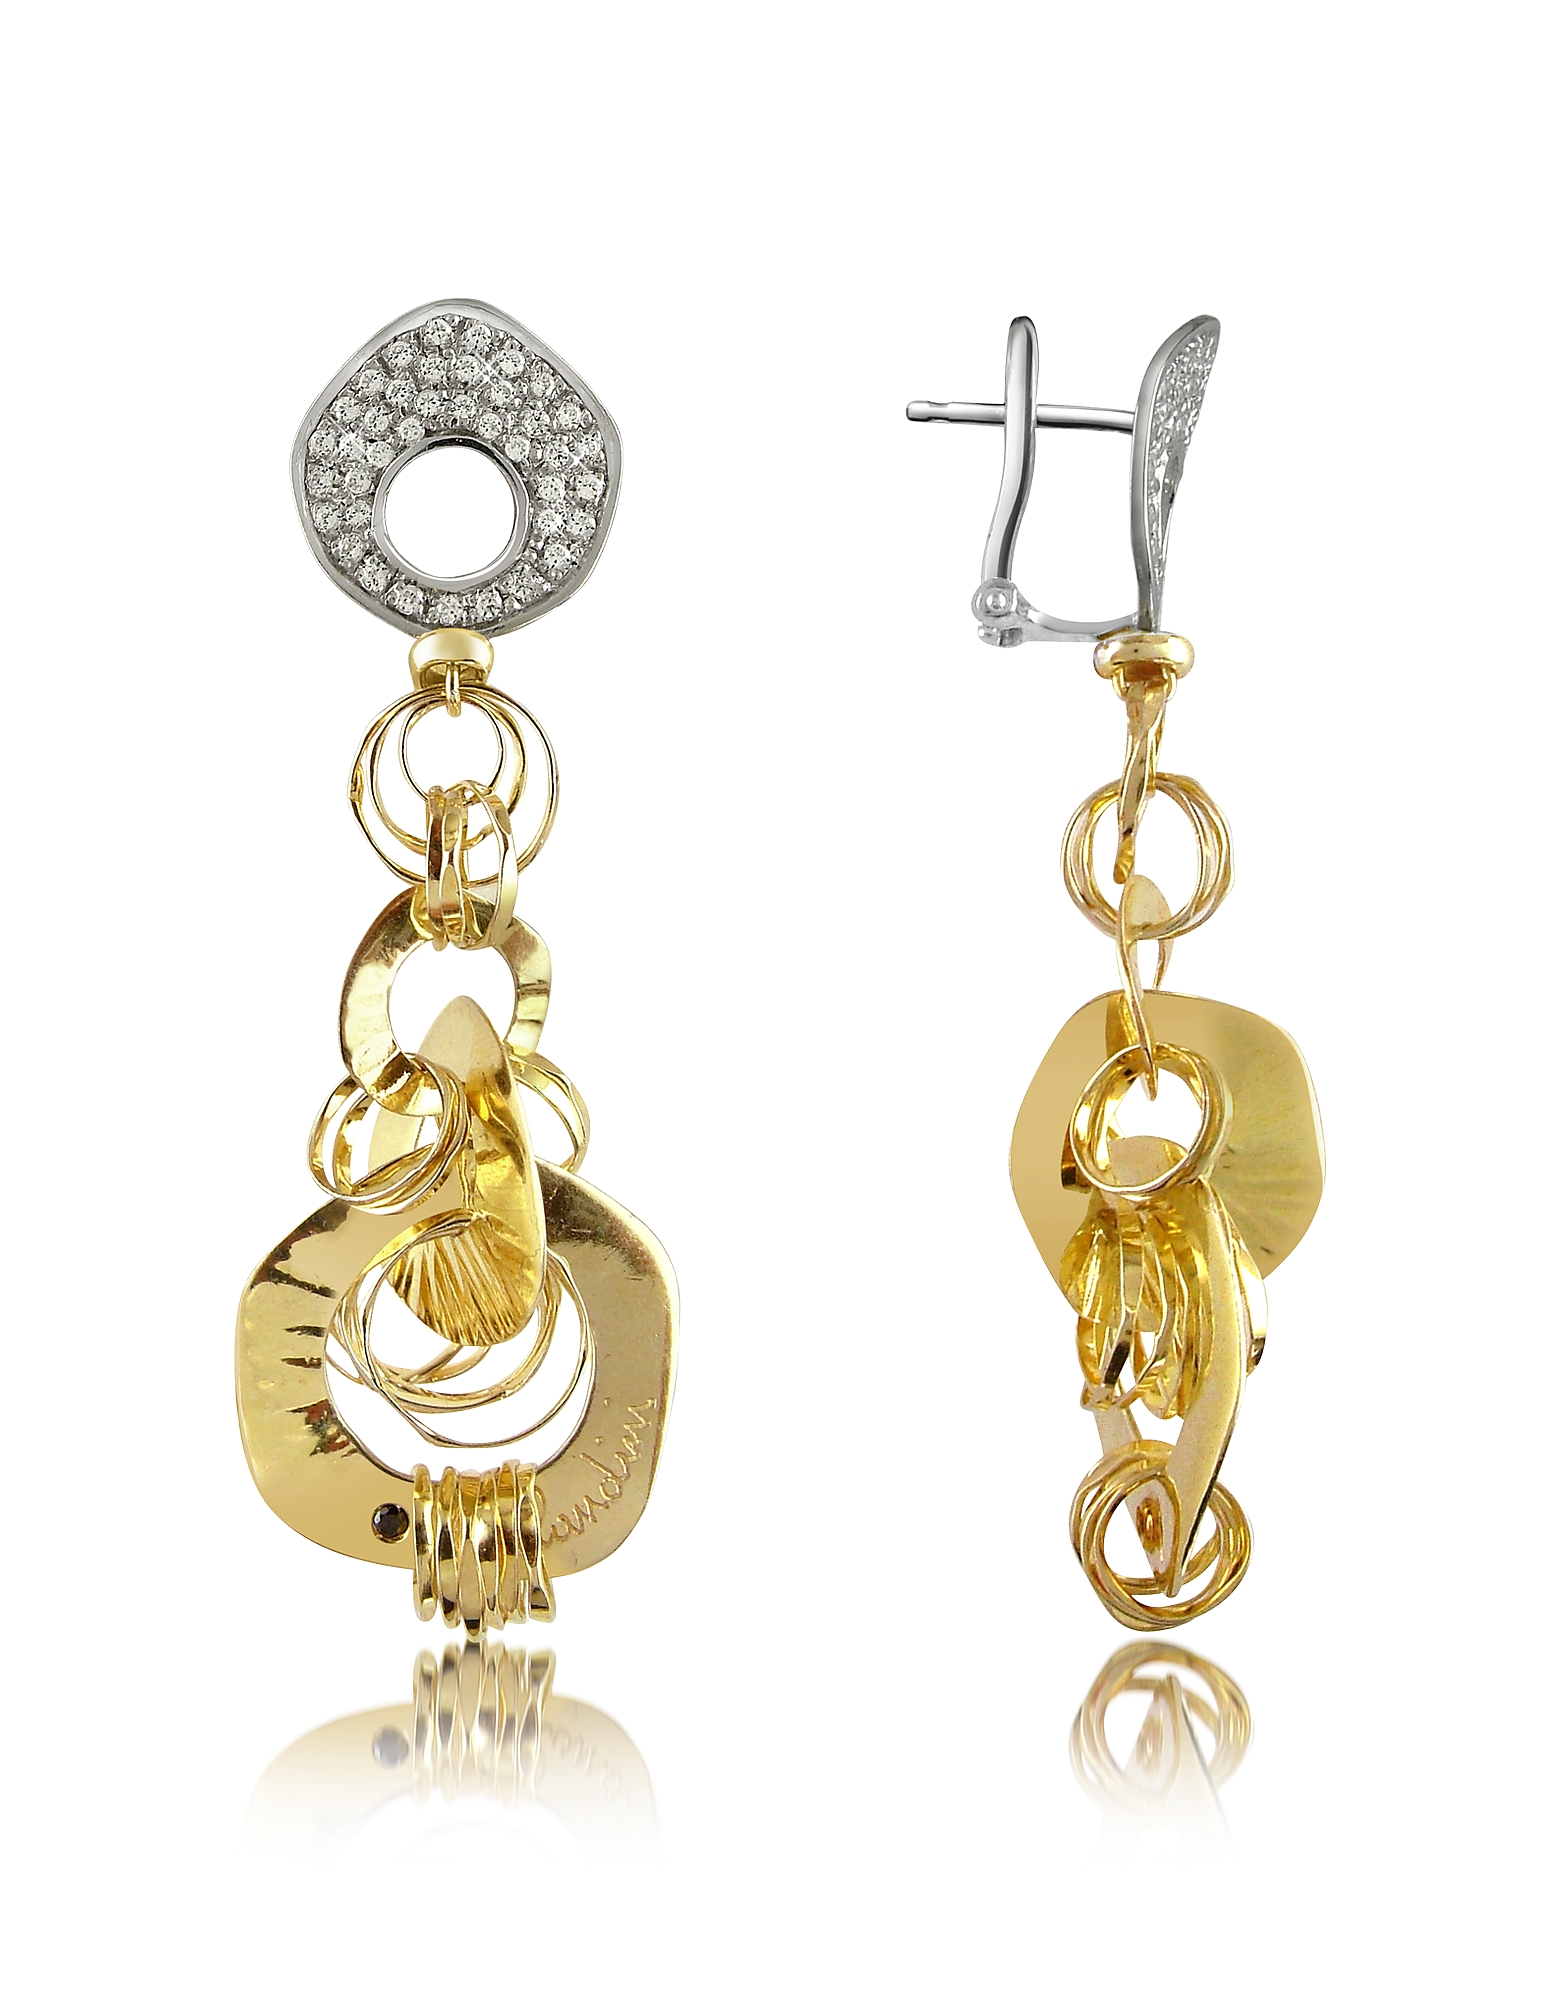 Orlando Orlandini Designer Earrings, Fashion - Diamond 18K Two-tone Gold Drop Earrings